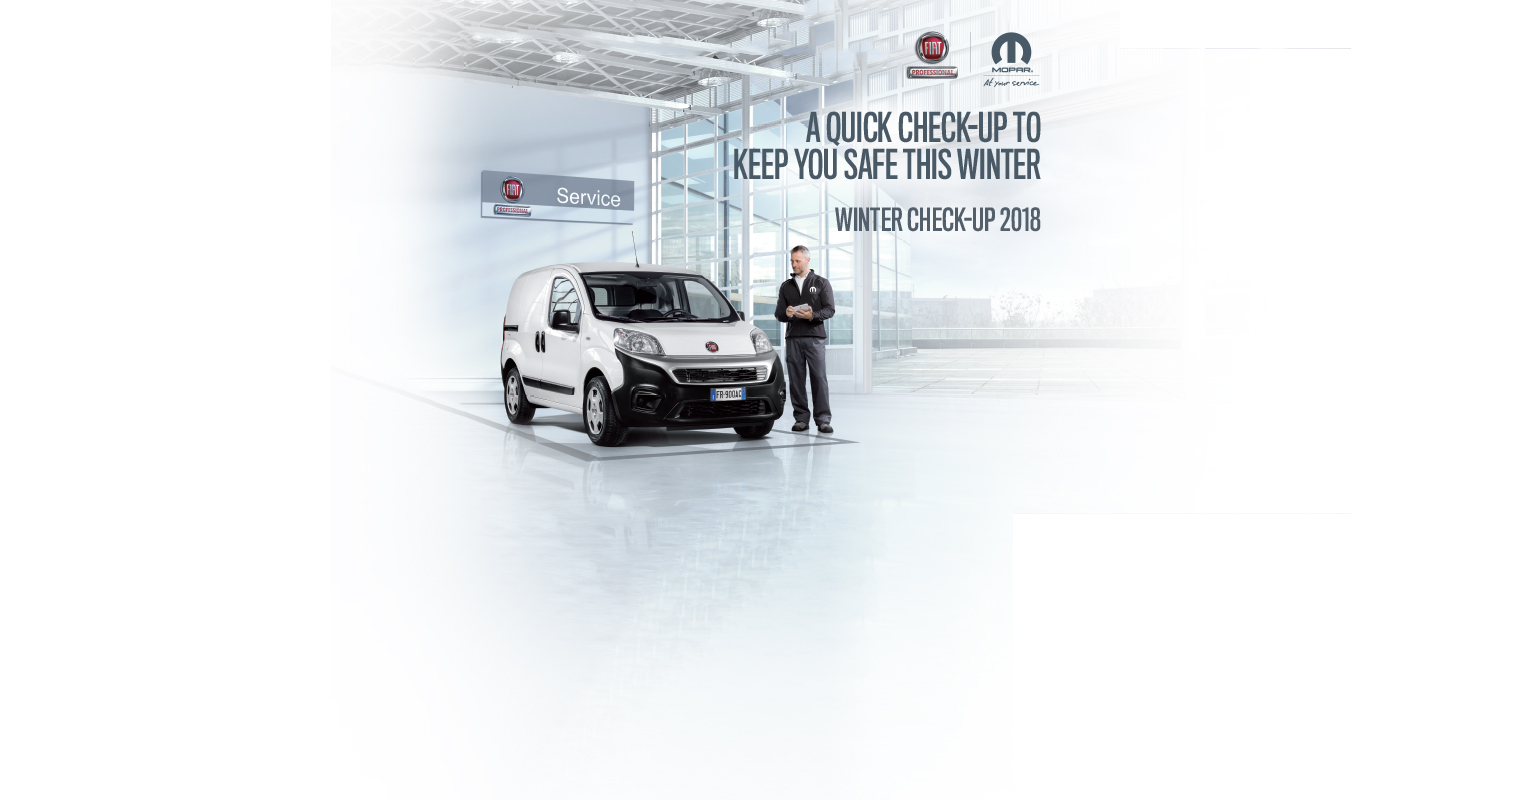 Garage Opel Luxembourg Take Care Of Your Fiat Professional Mopar Uk